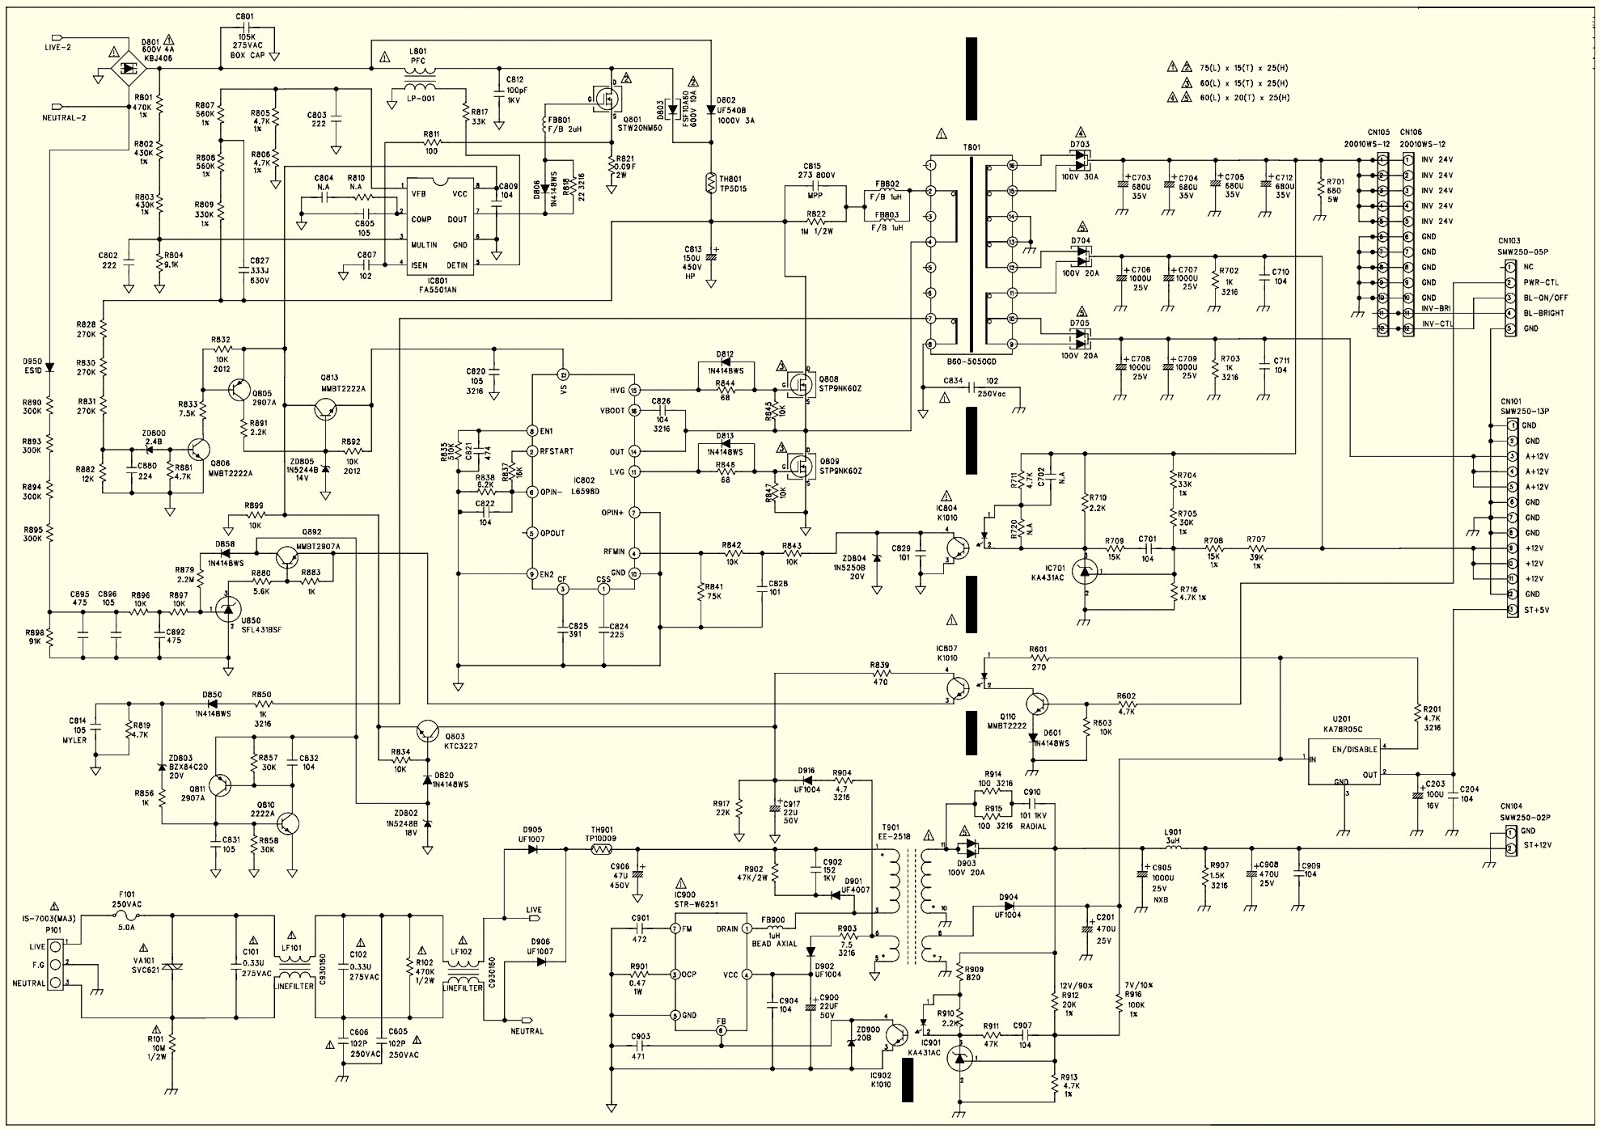 Simple 12V 1A SMPS - Smps Connection Diagram